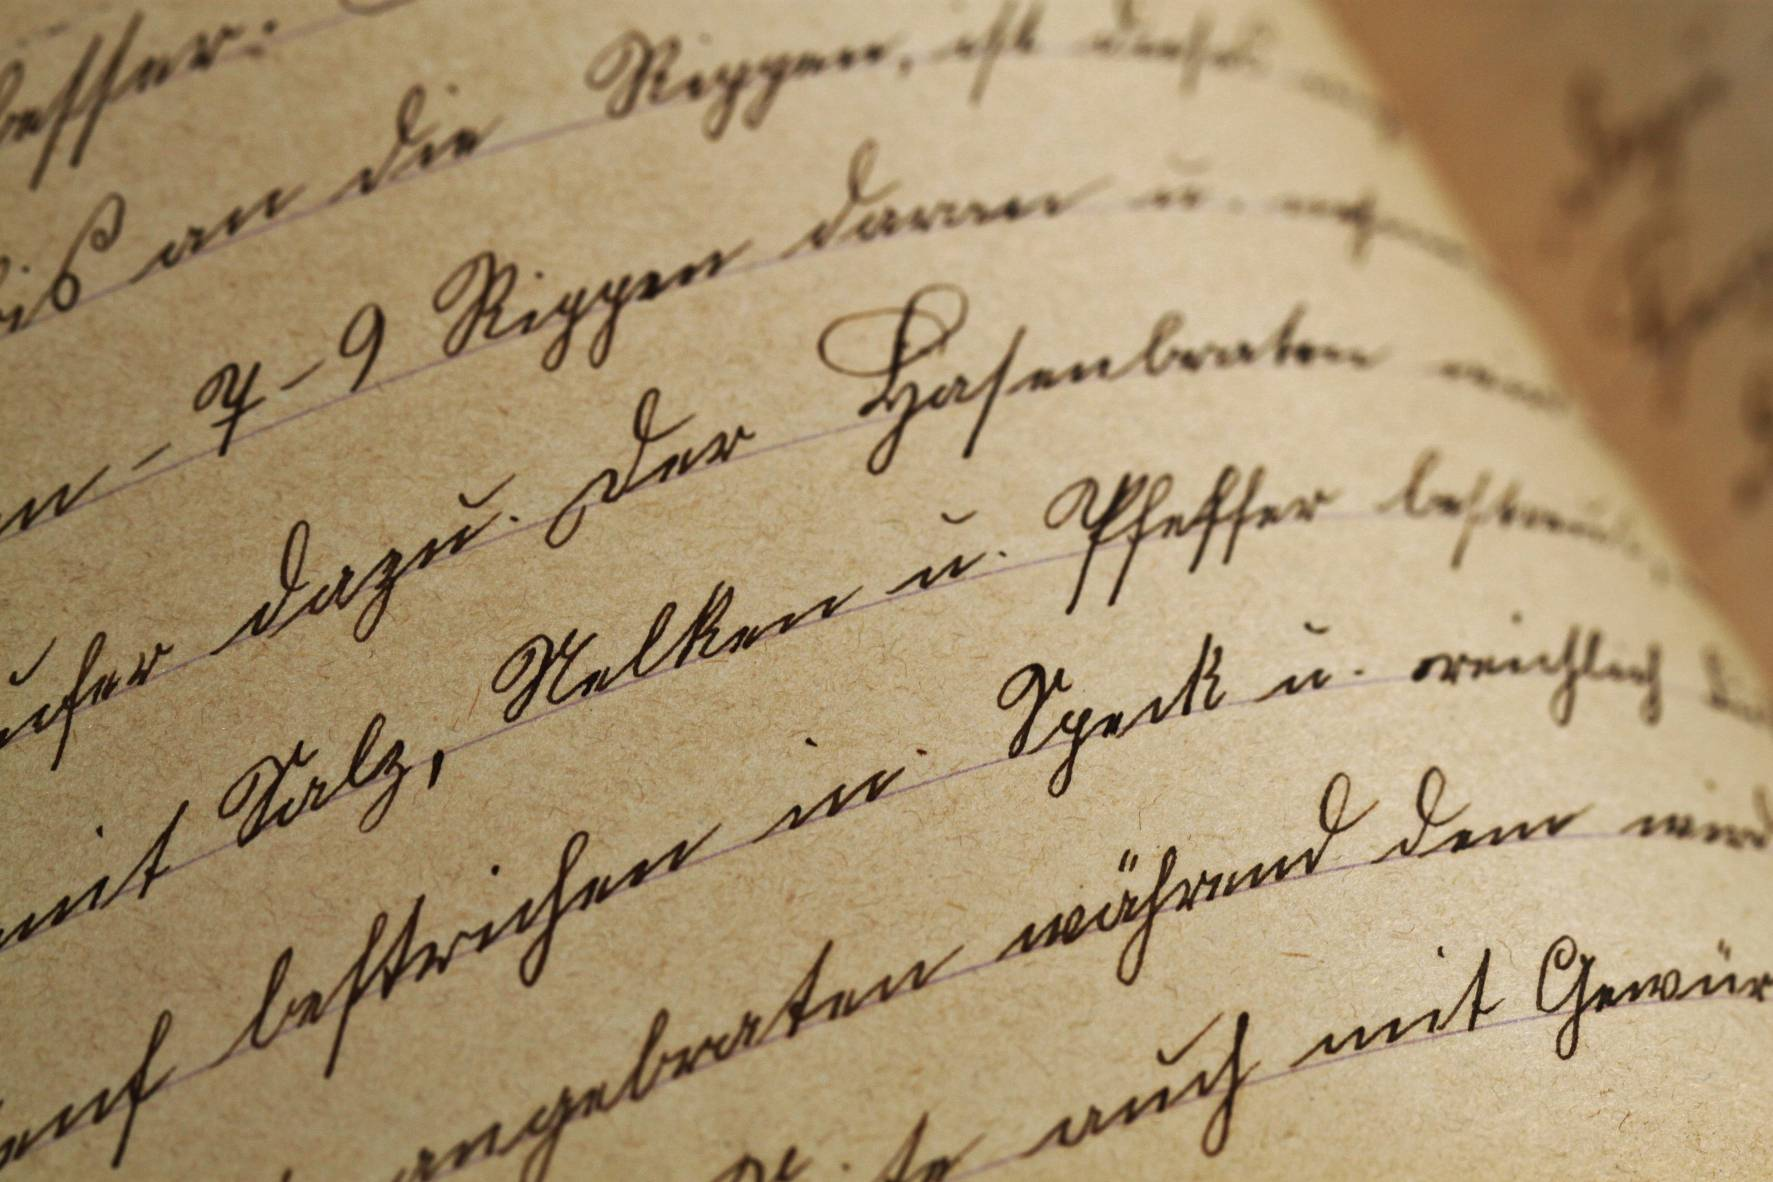 texture-handwriting-sutterlin-vintage-99562